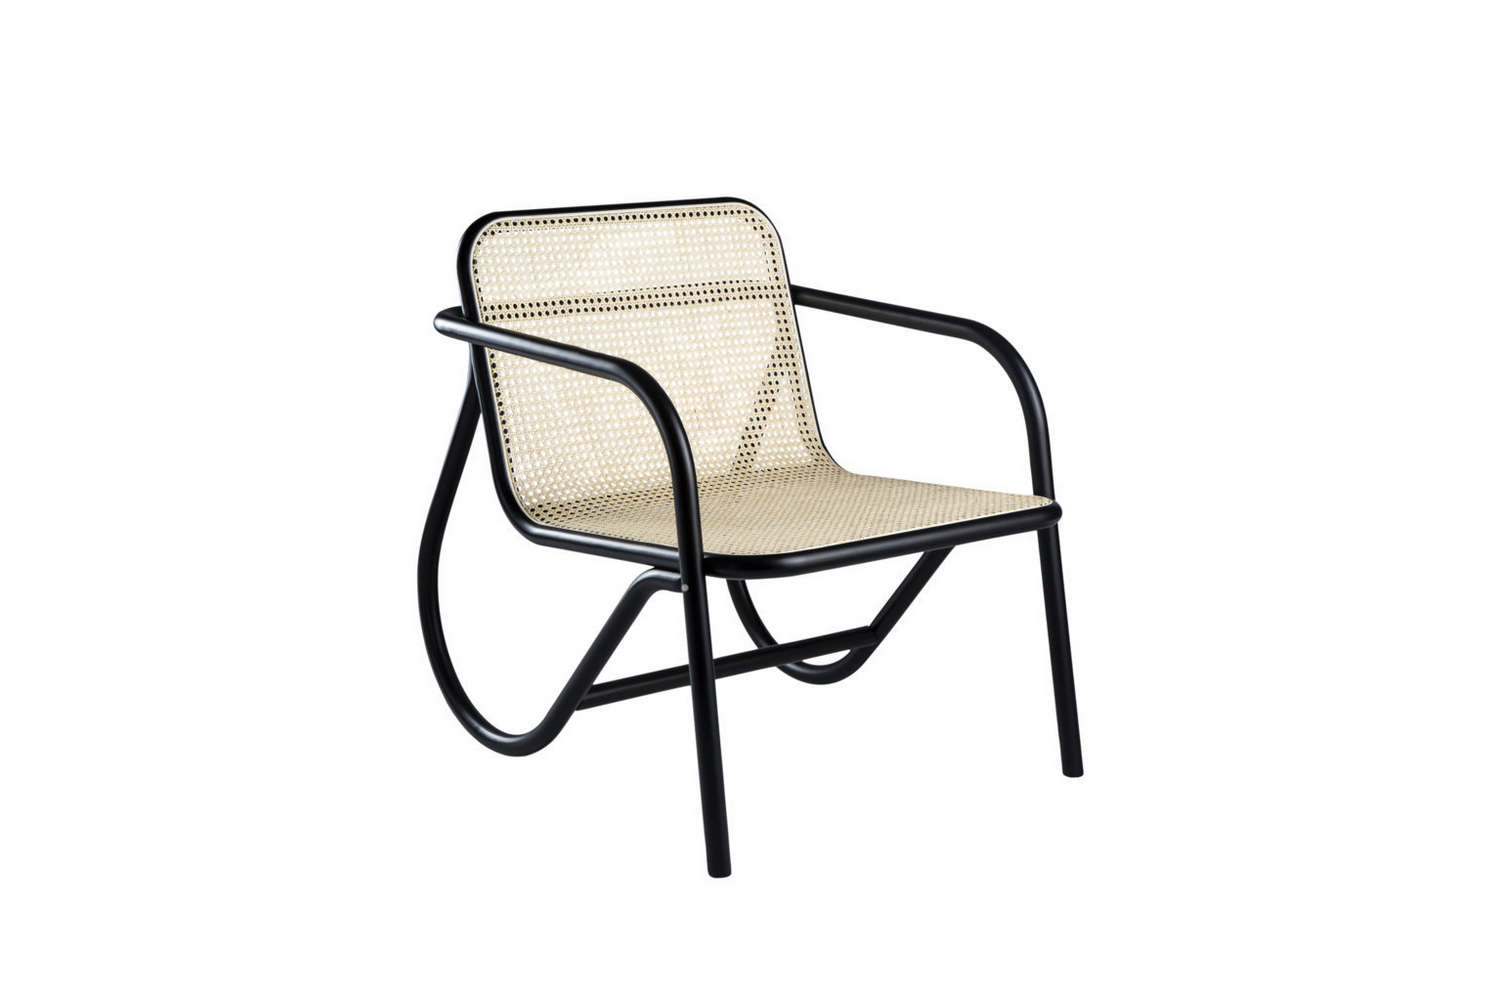 Thonet Michael N 200 Armchair By Michael Anastassiades For Gebruder Thonet